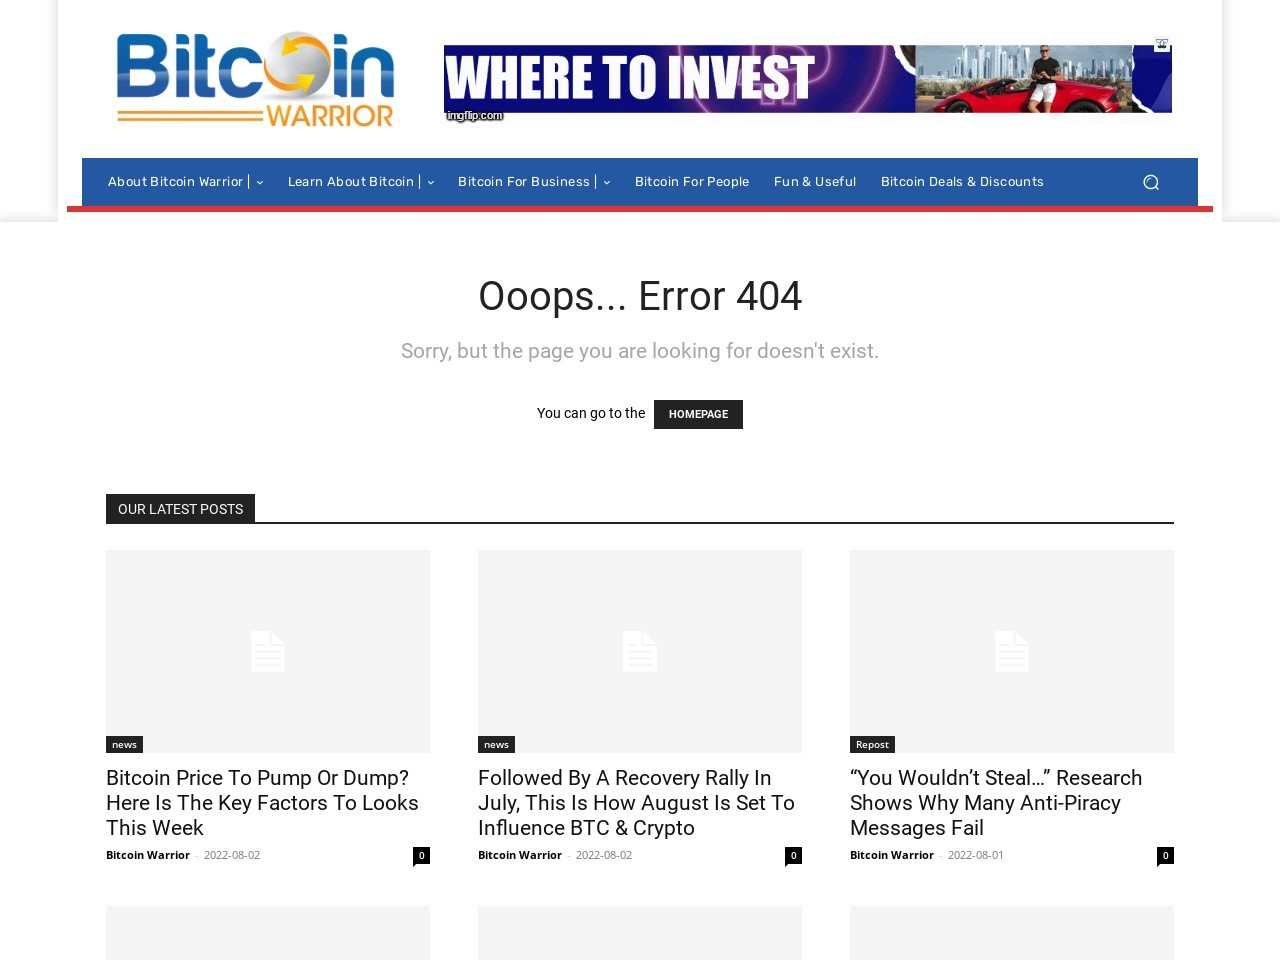 Bitcoin Cash [BCH]: Roger Ver pledges to support any cryptocurrency that works and heralds economic freedom